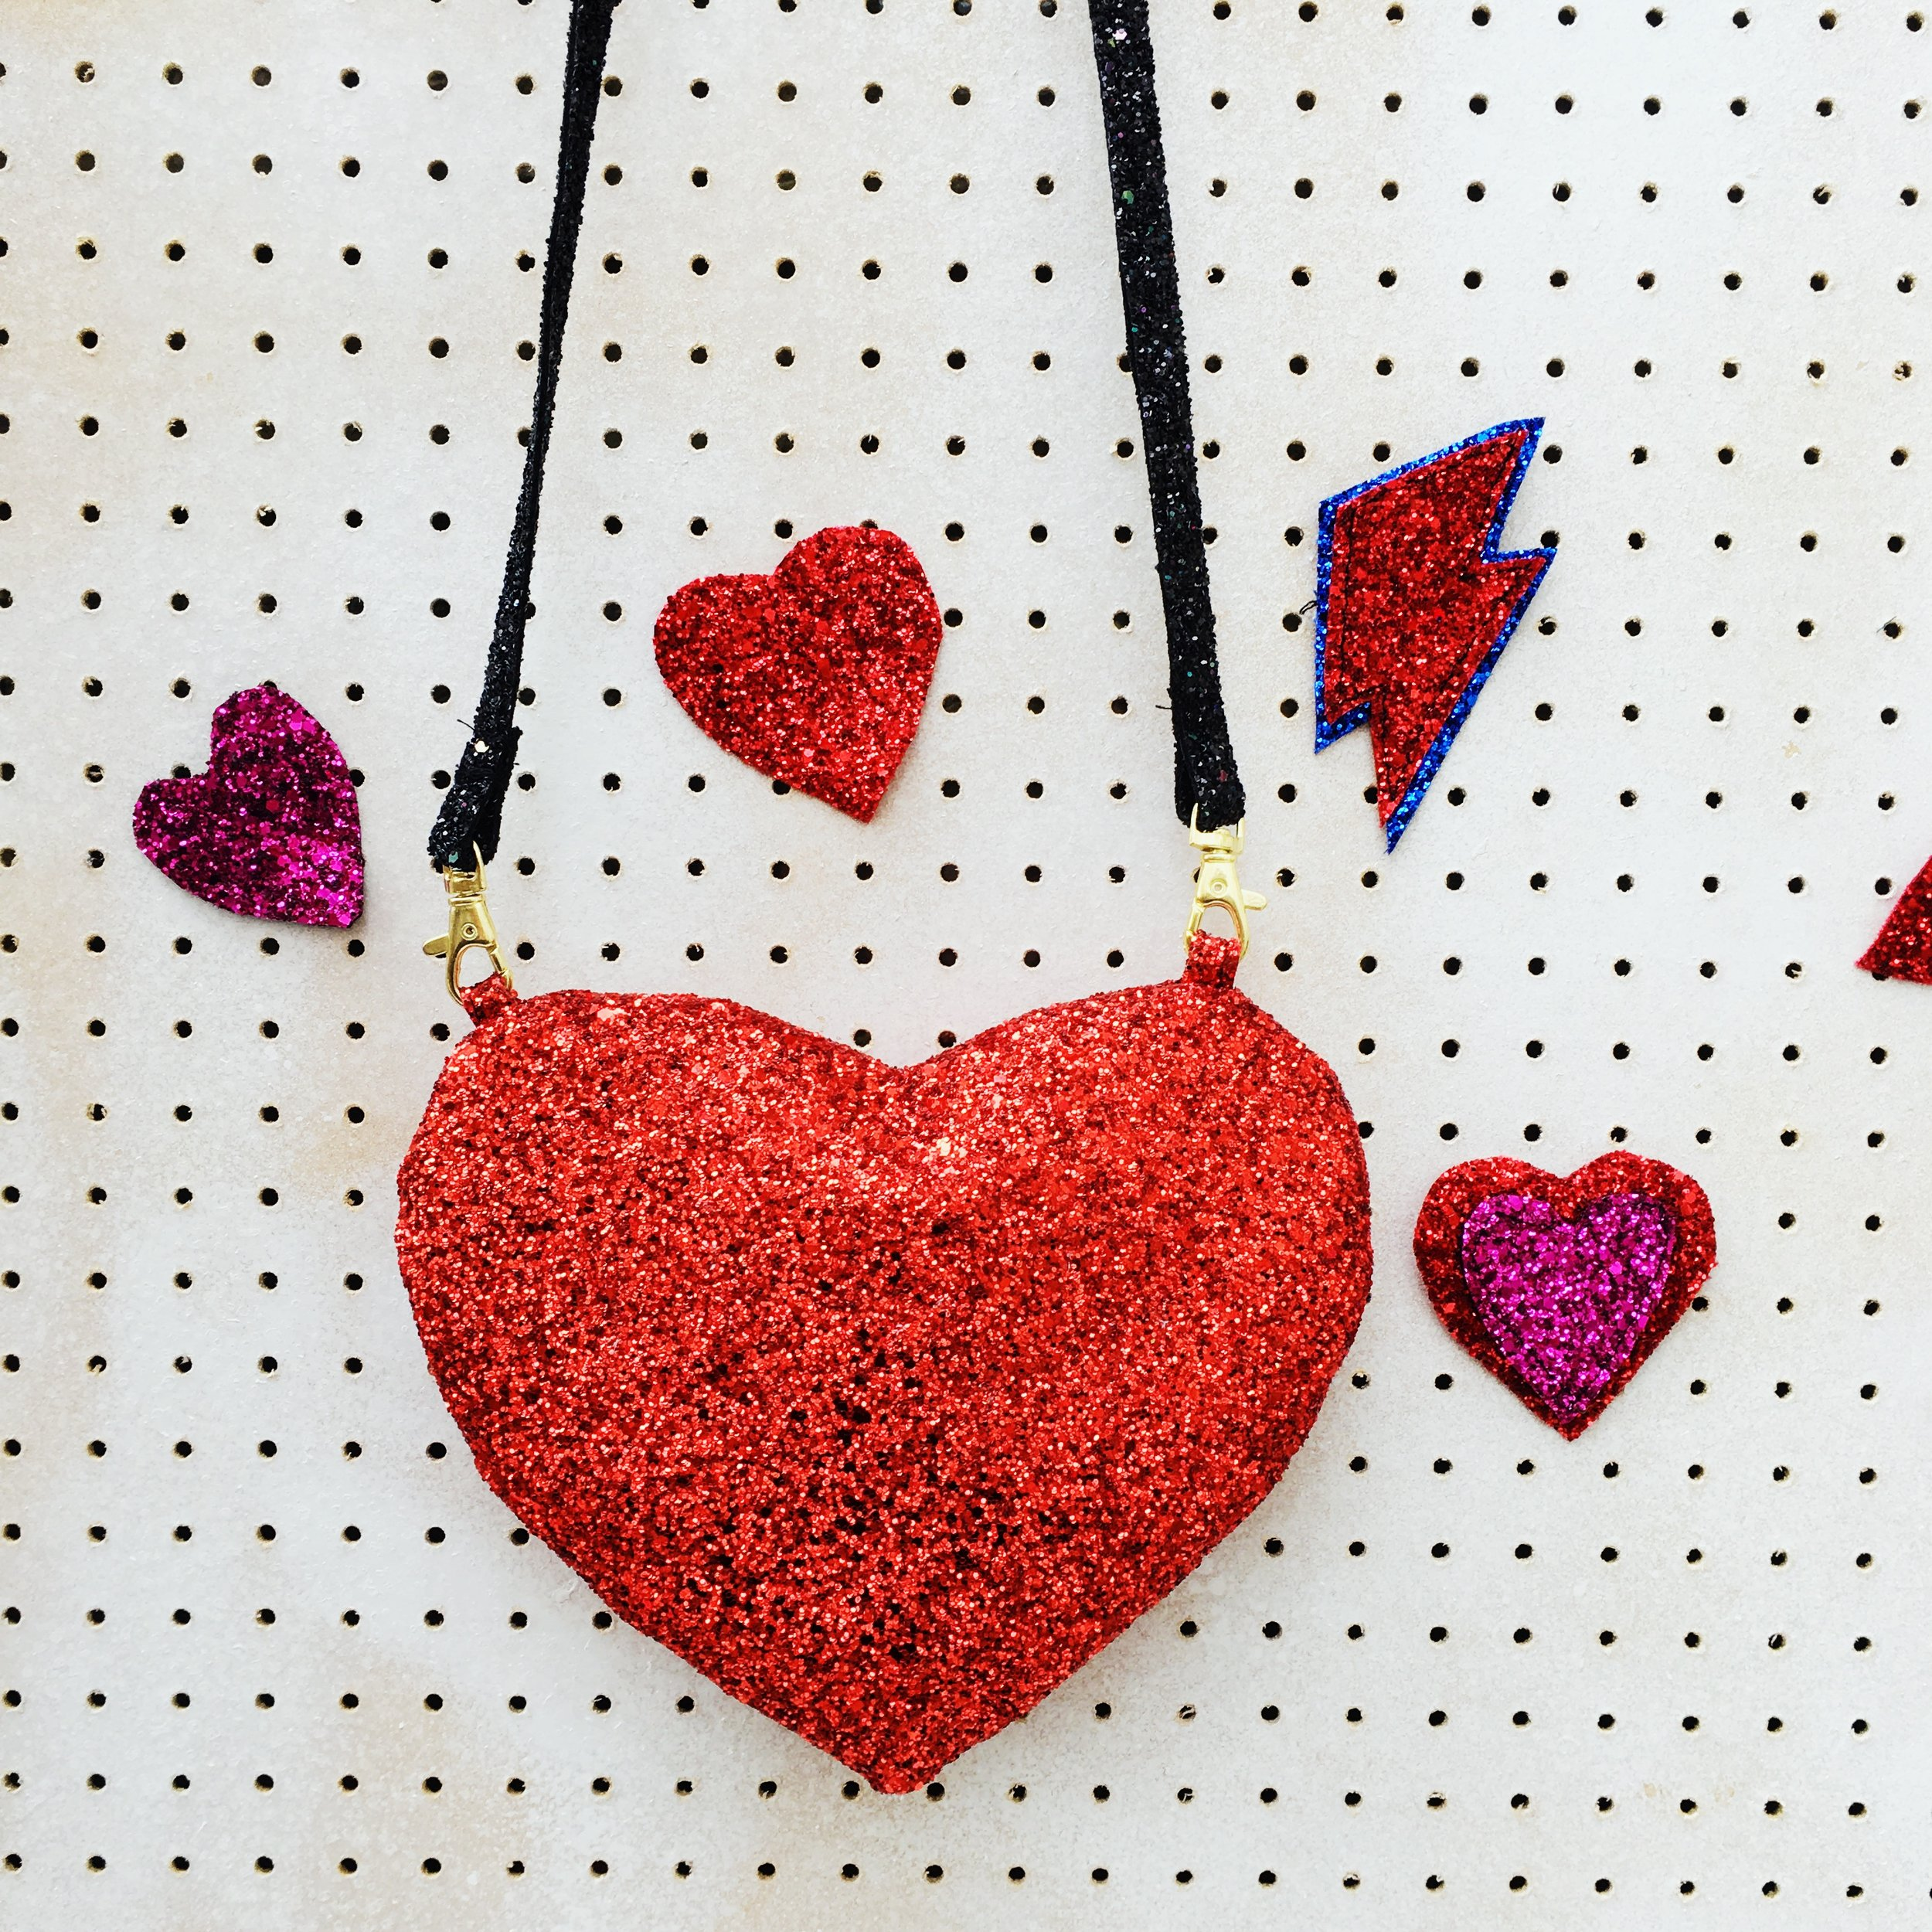 Our new love heart bags are online now yippee.